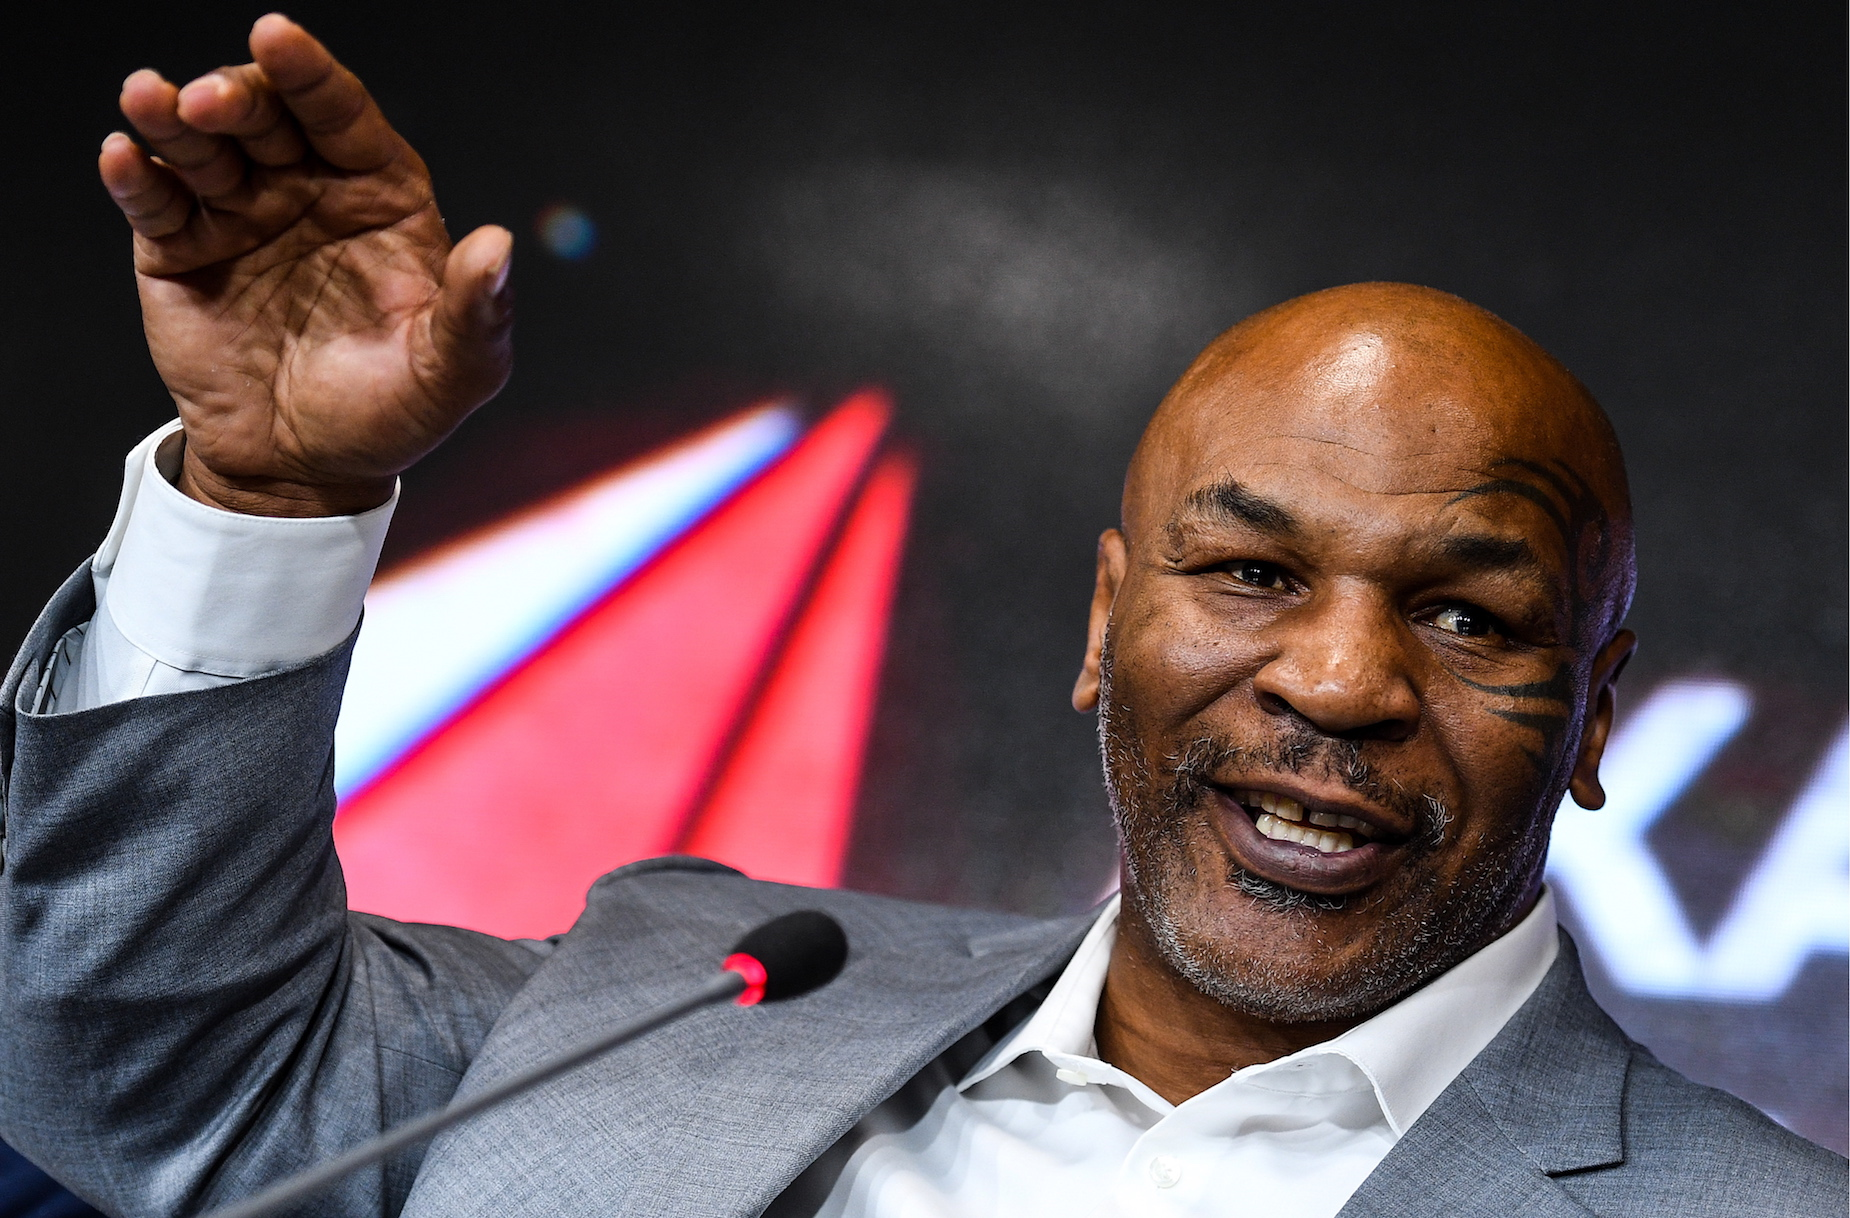 Mike Tyson will reportedly earn $10 million fighting Roy Jones Jr., but he isn't interested in the cash.